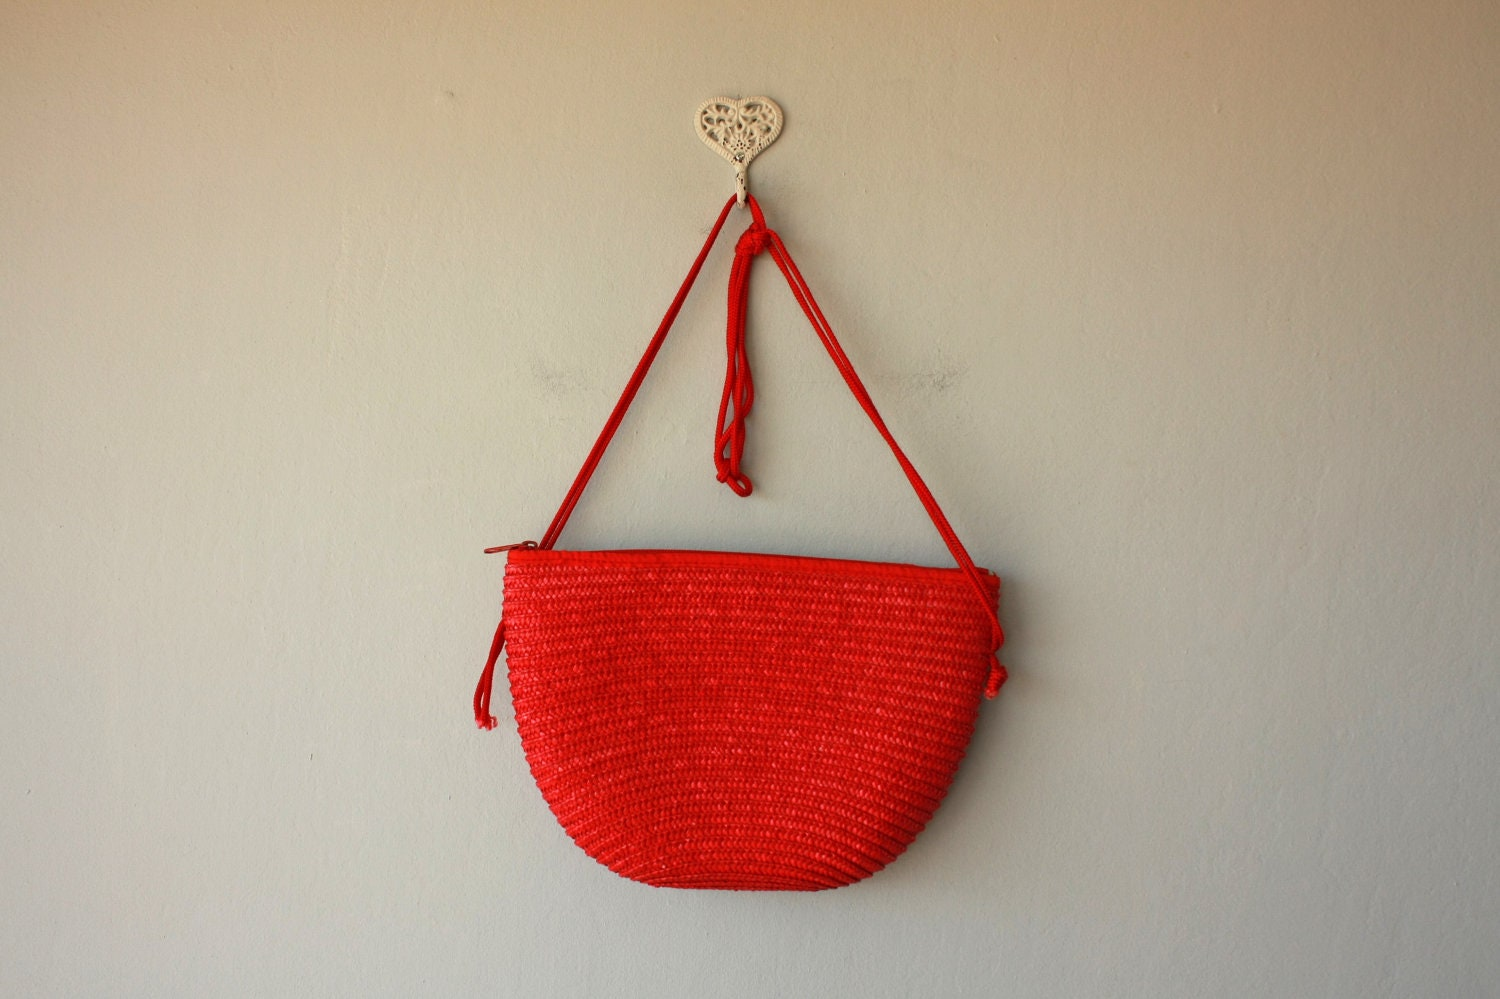 straw purse / red straw bag / 1980s woven purse / summer bag / woven bag - CustardHeartVintage